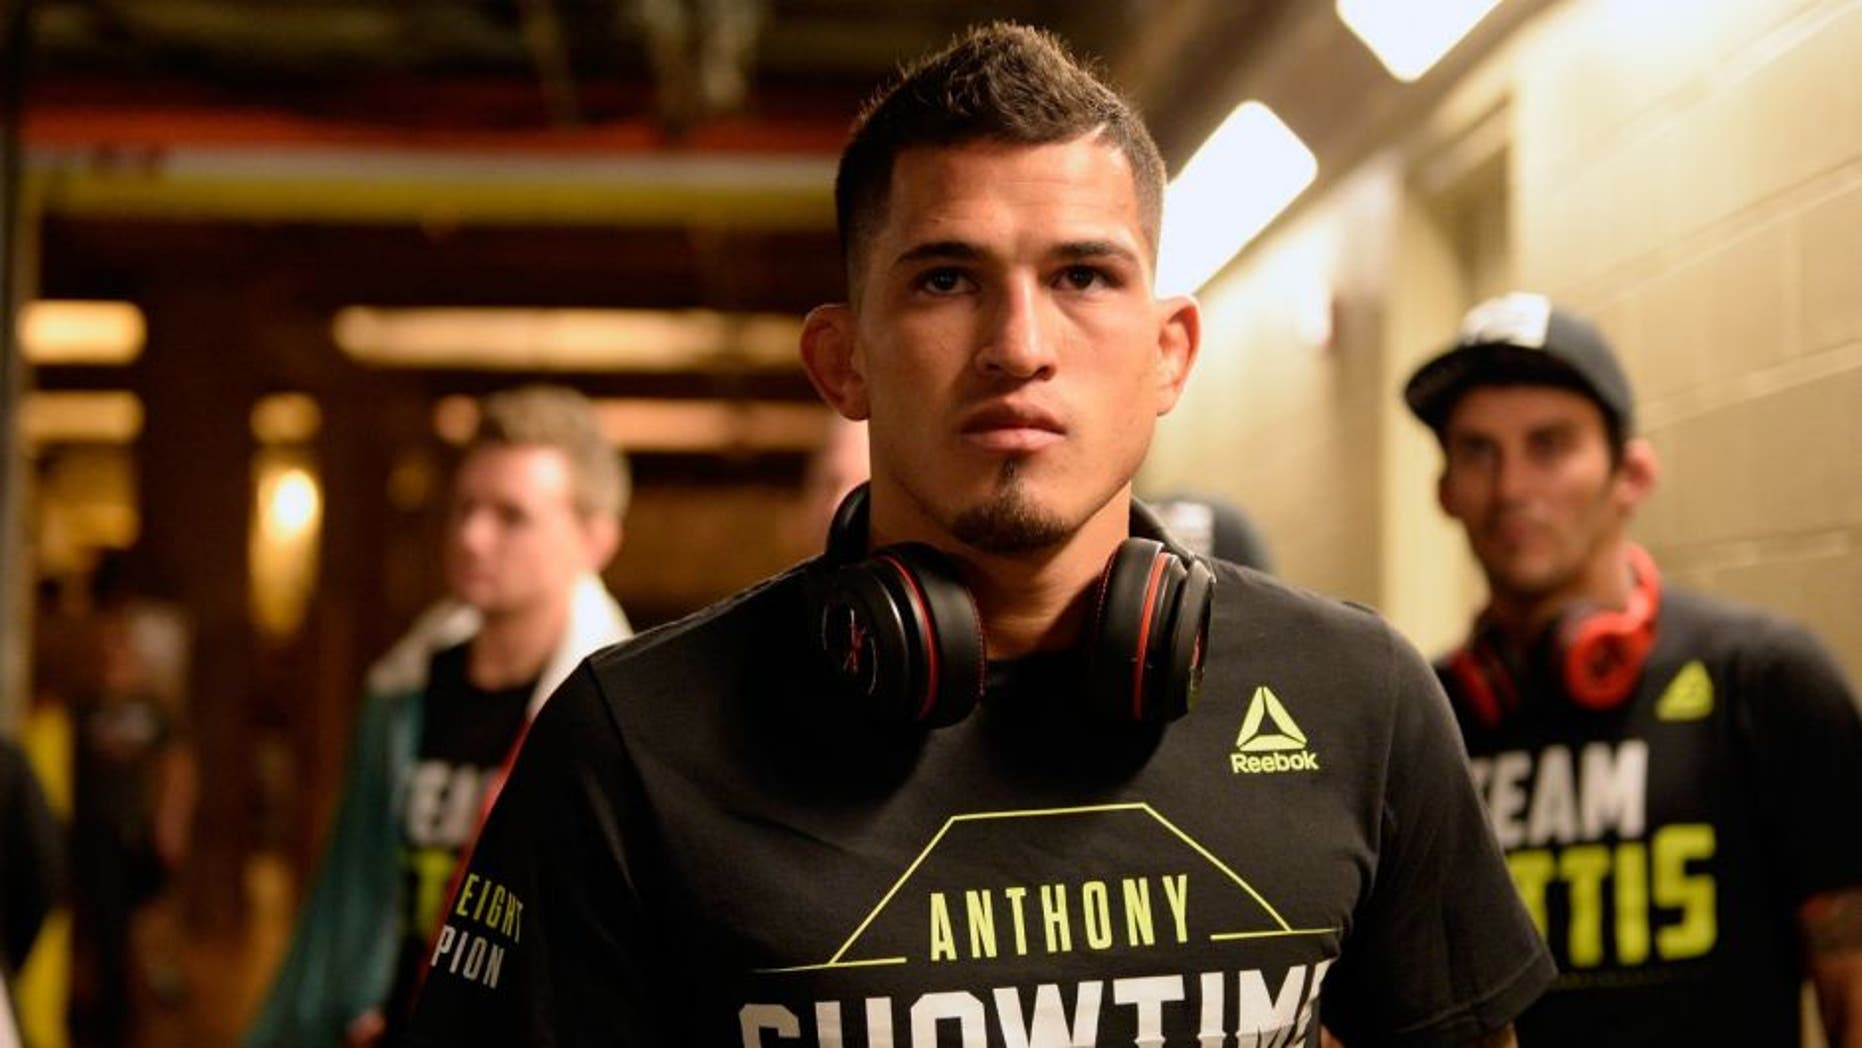 DALLAS, TX - MARCH 14: UFC lightweight champion Anthony Pettis warms up backstage before facing Rafael dos Anjos of Brazil in their UFC lightweight championship bout during the UFC 185 event at the American Airlines Center on March 14, 2015 in Dallas, Texas. (Photo by Mike Roach/Zuffa LLC/Zuffa LLC via Getty Images)